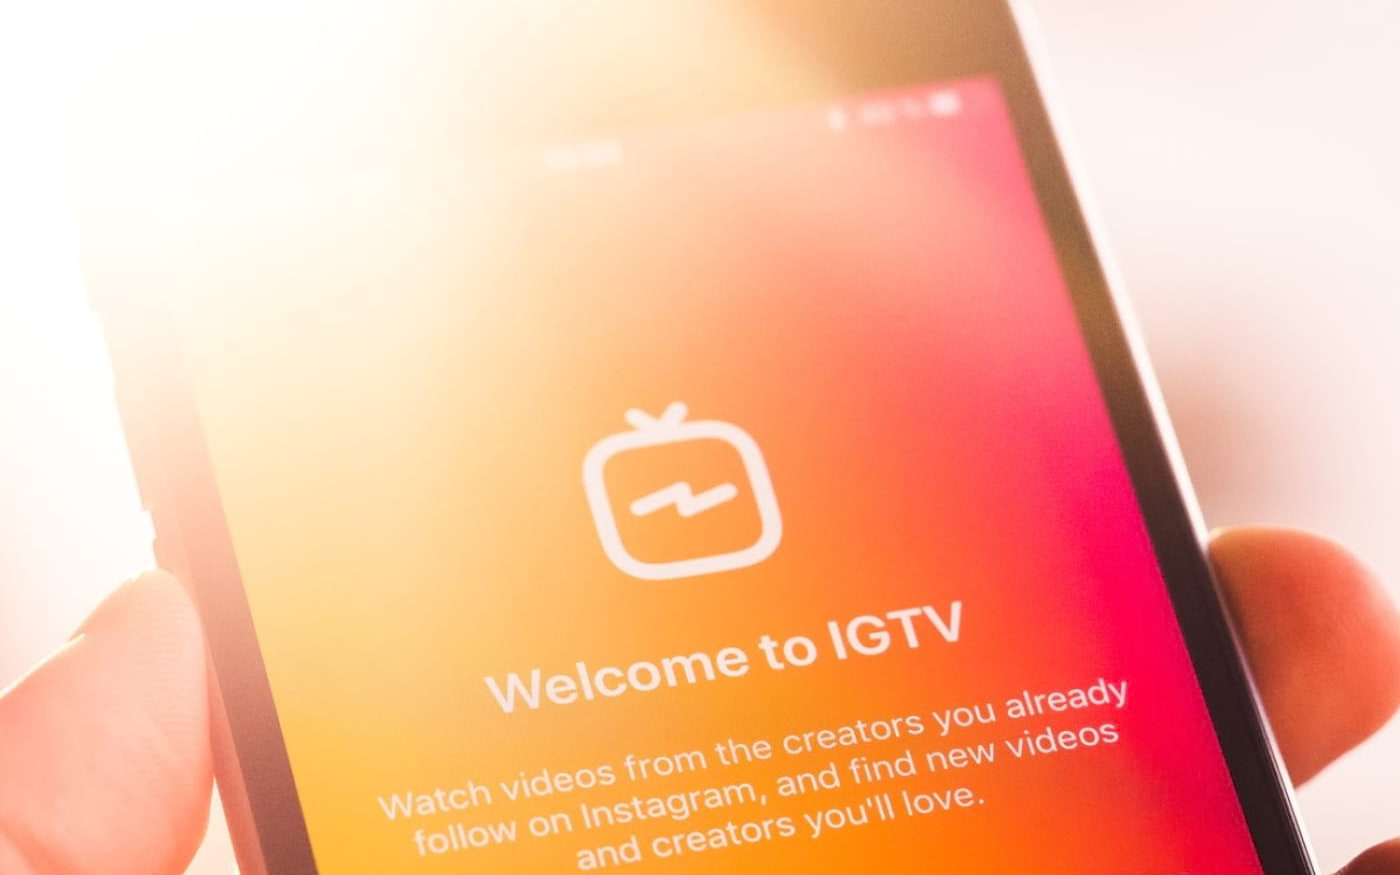 Instagram enfim libera vídeos na horizontal dentro do IGTV